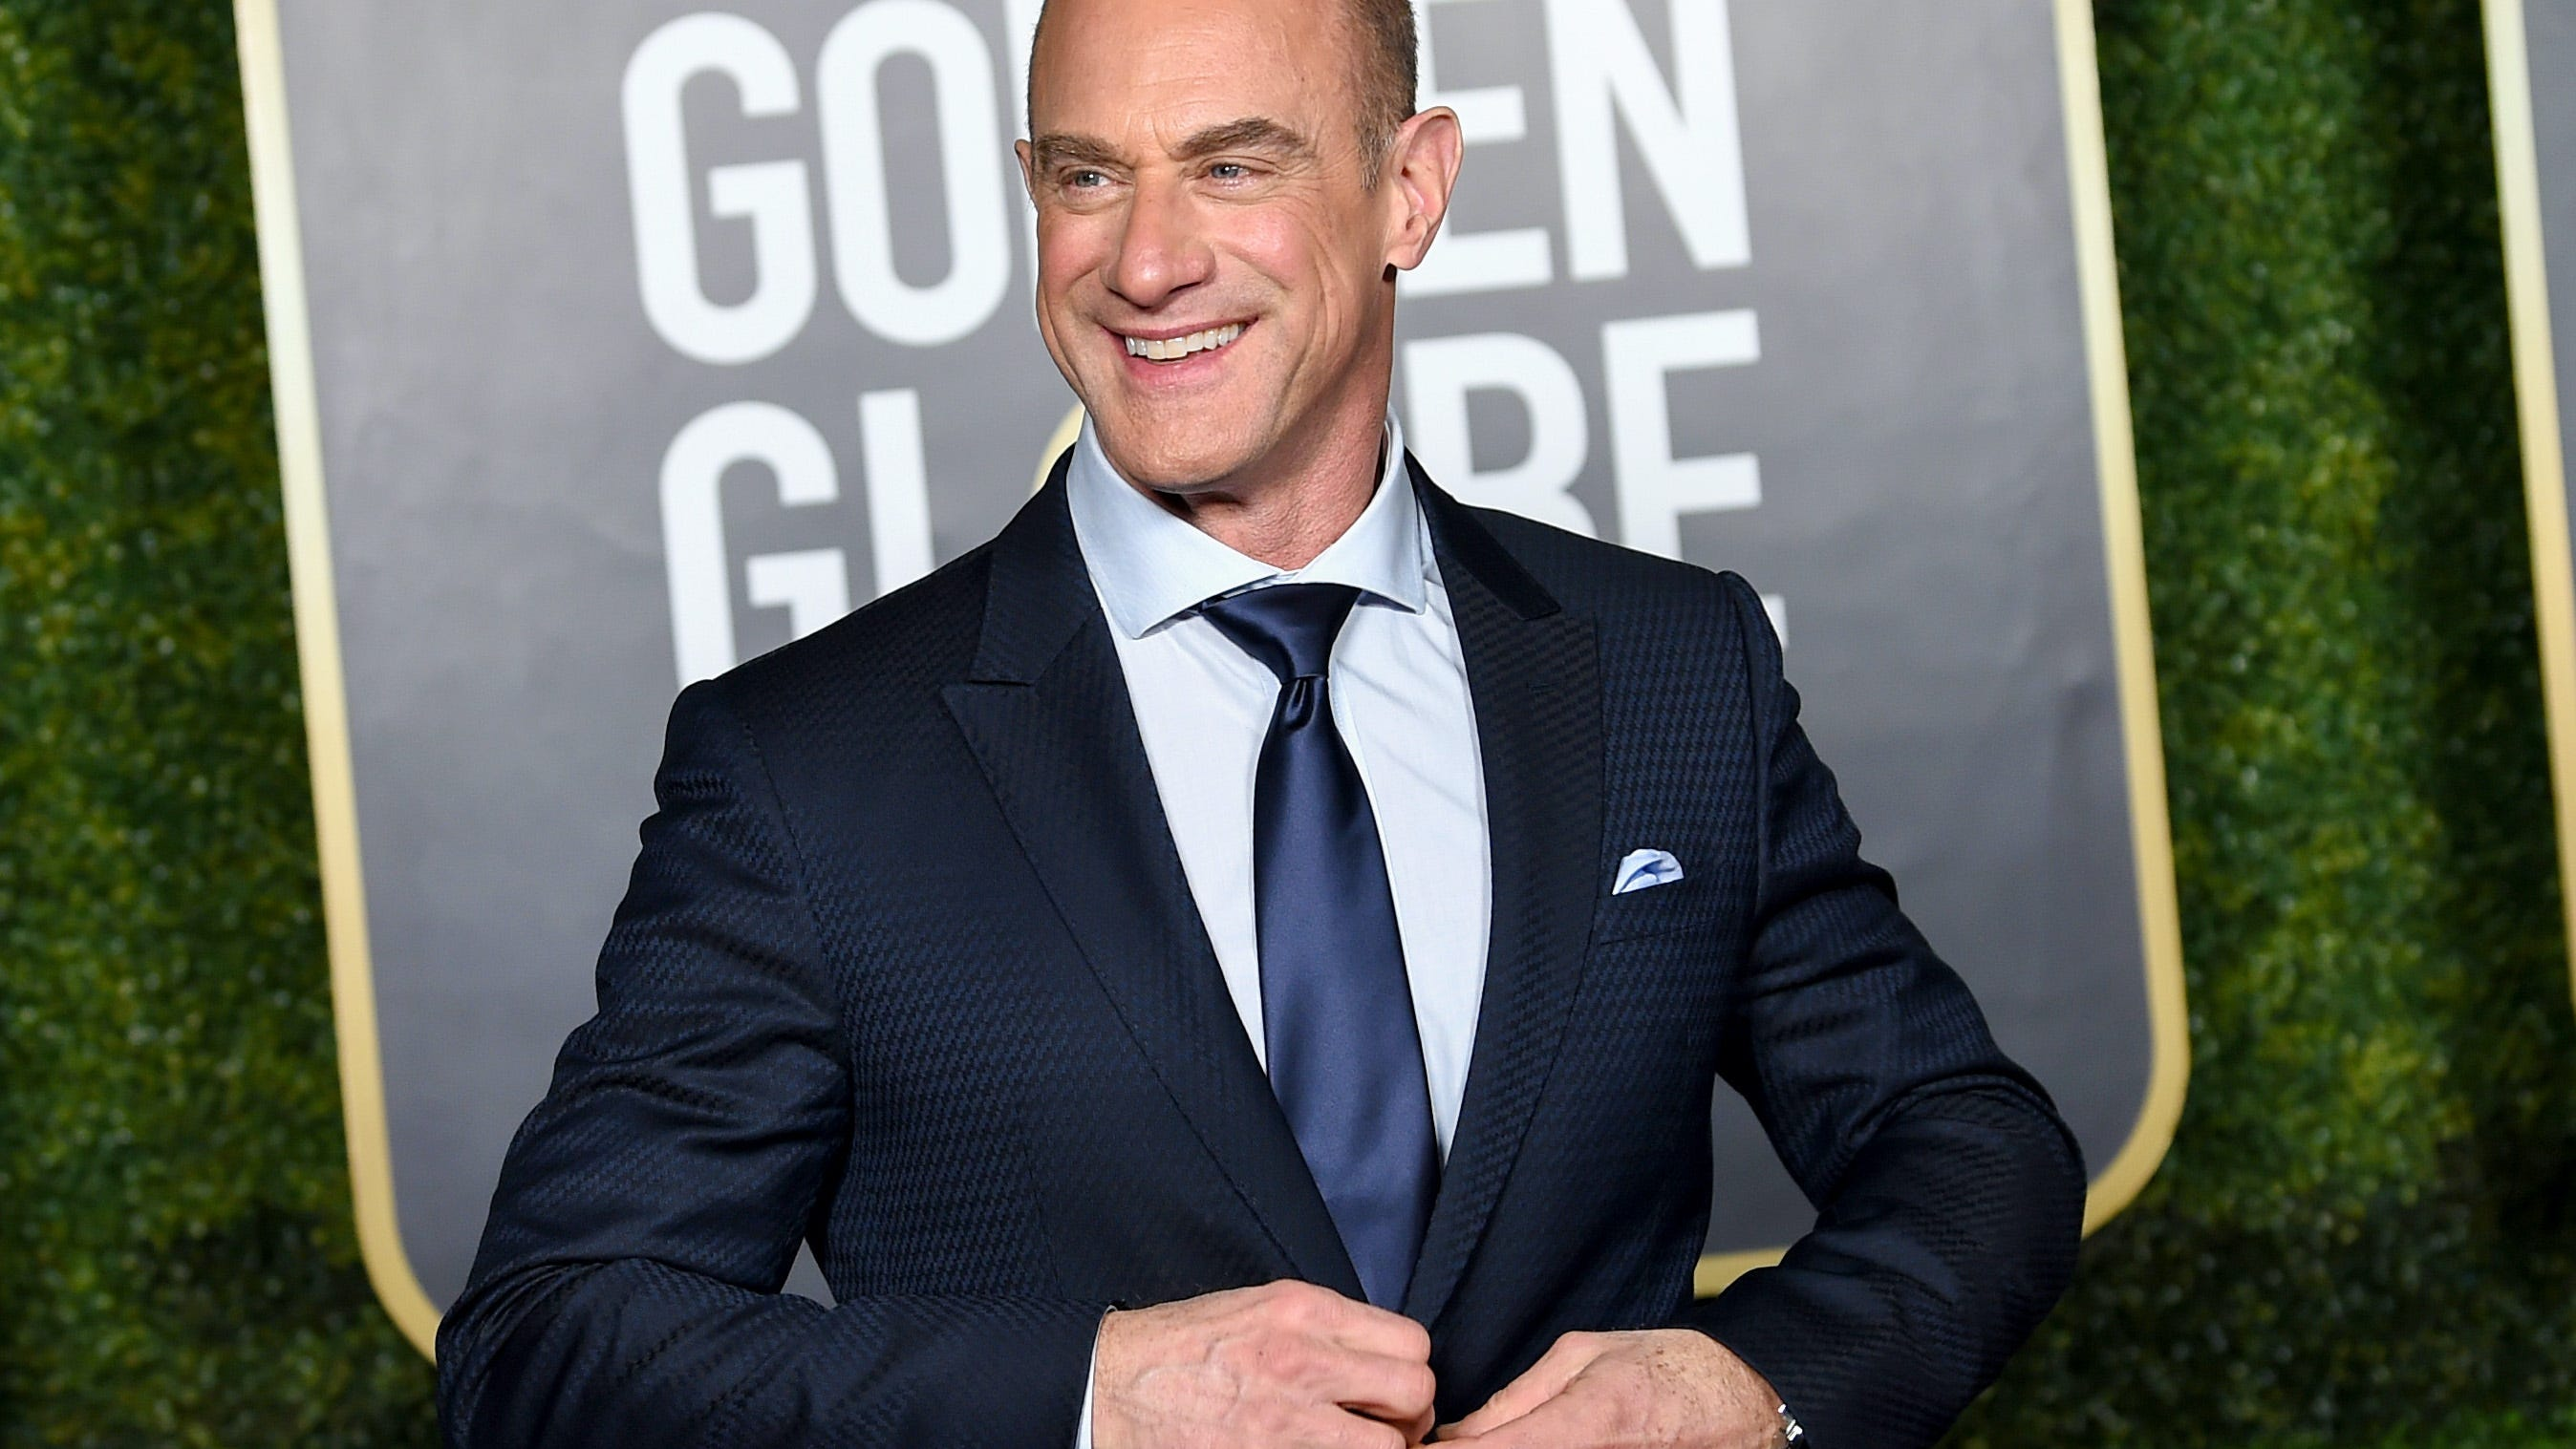 Christopher Meloni, 60, shows off buff biceps on set of 'Law & Order: Organized Crime'